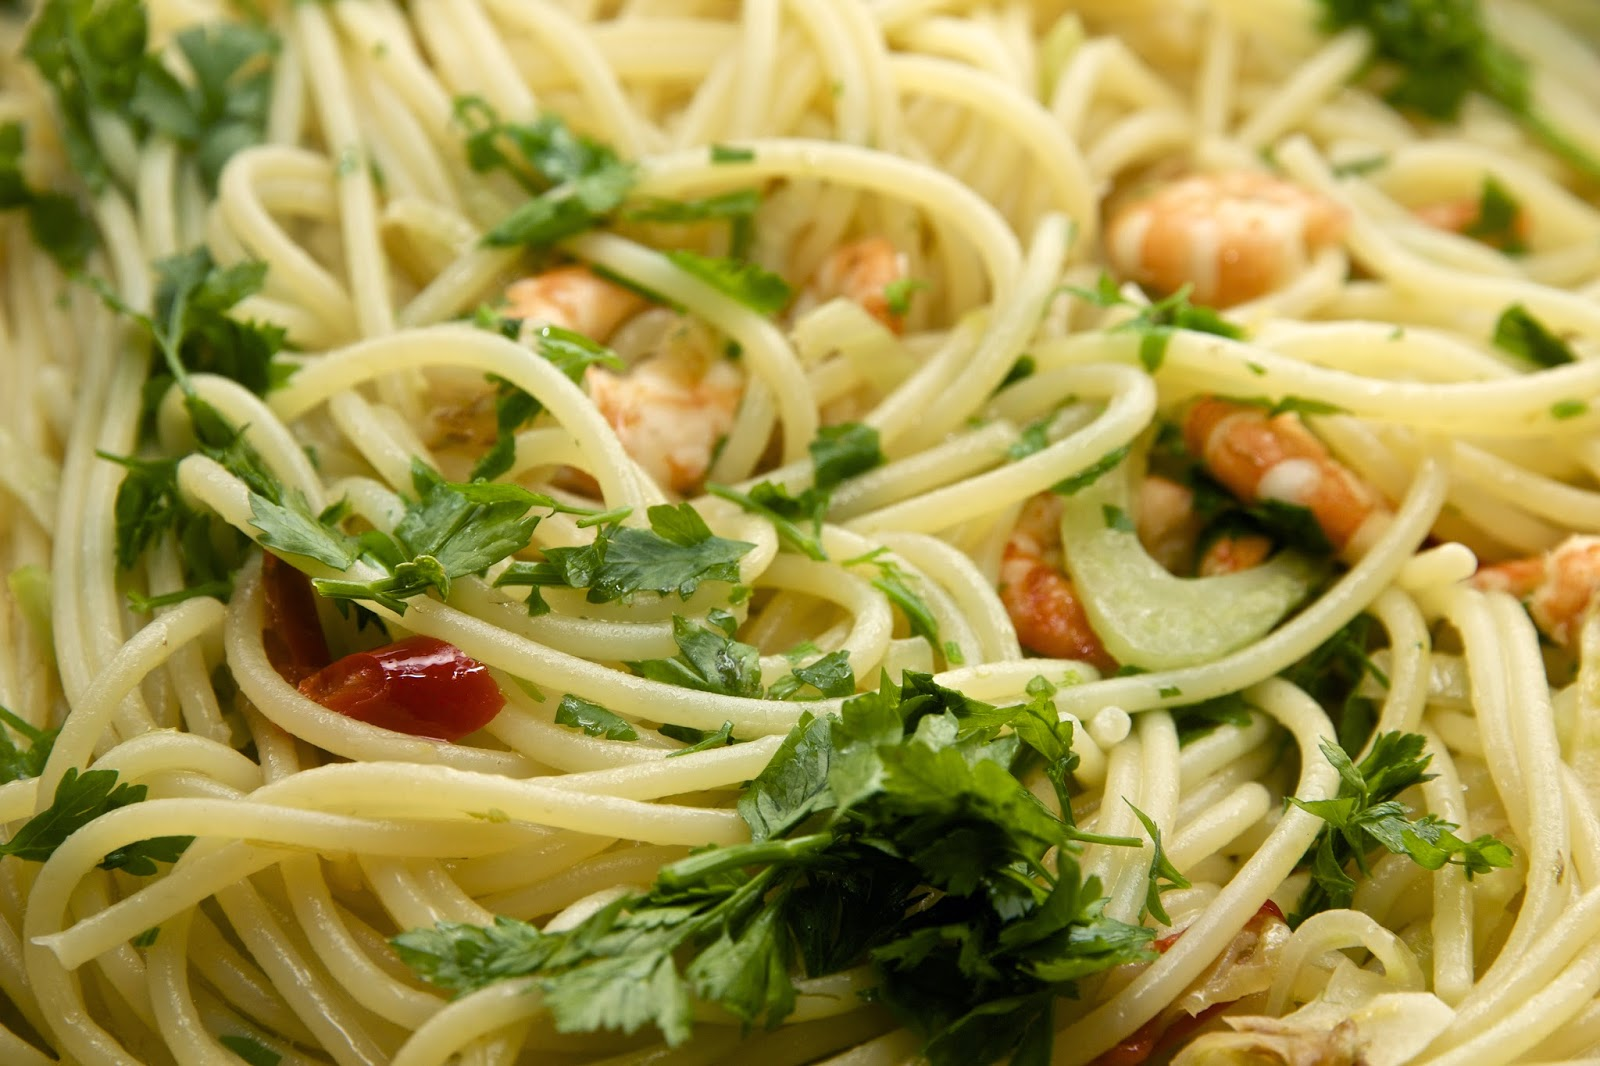 Stay-at-home-dude.com: Spaghetti with fennel and shrimps